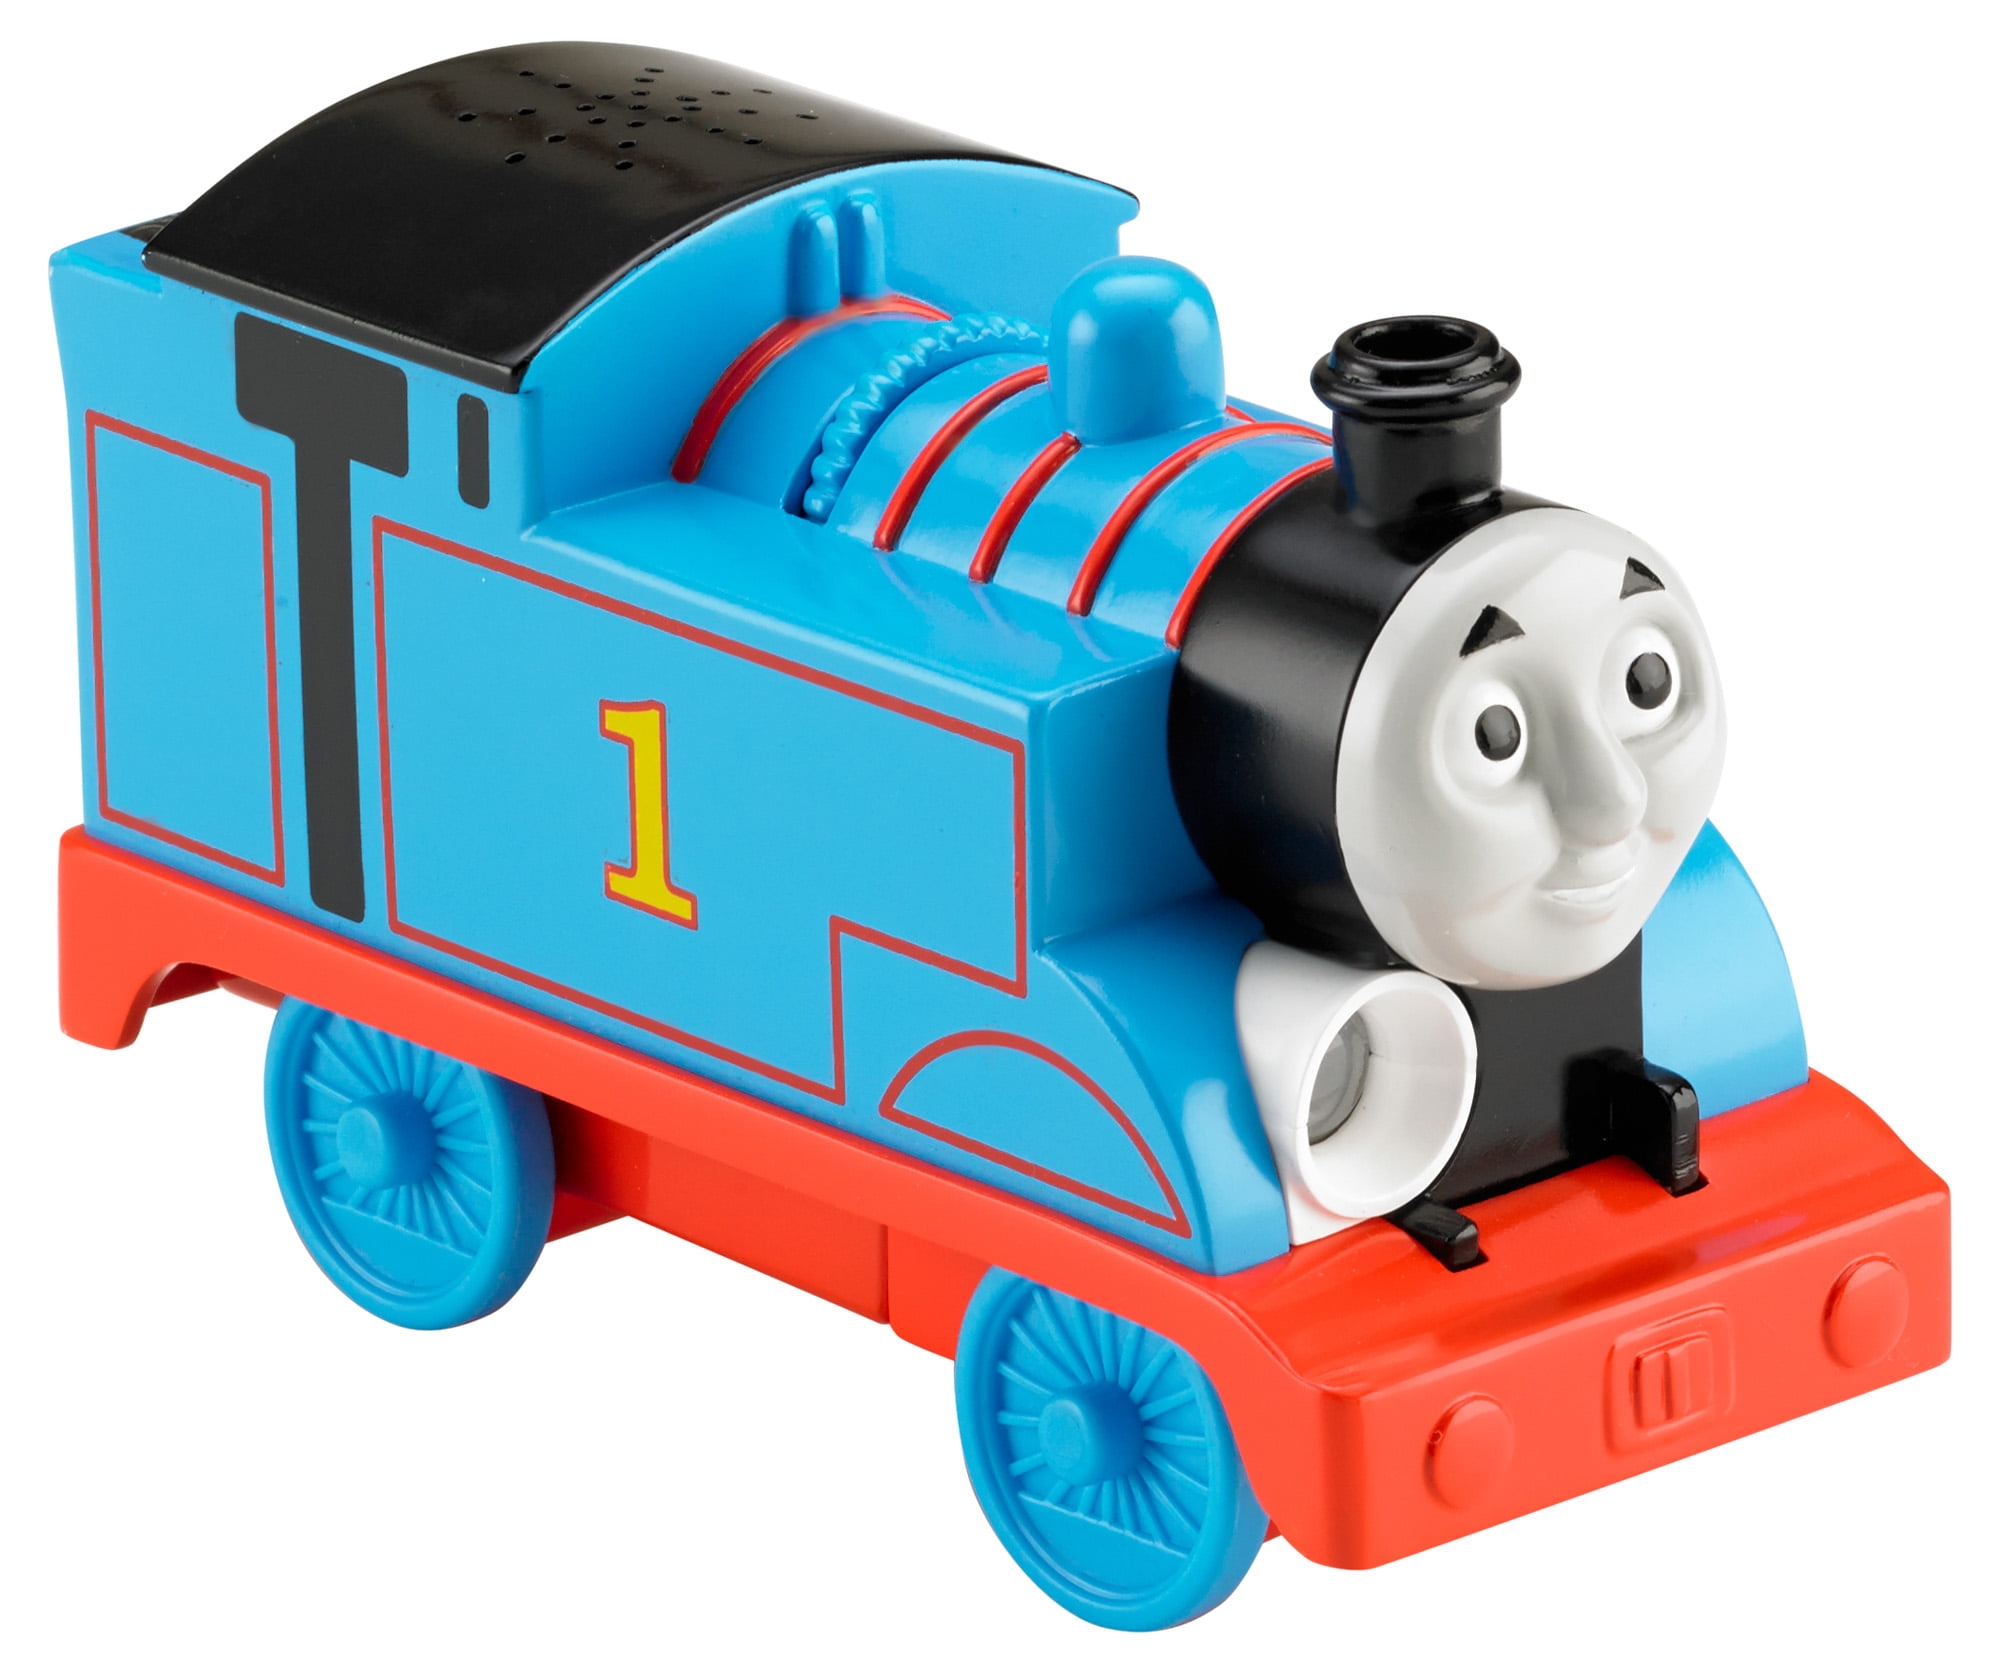 Thomas & Friends Project & Play Thomas by FOSHAN CITY NANHAI MATTEL DIECAST CO., LTD.